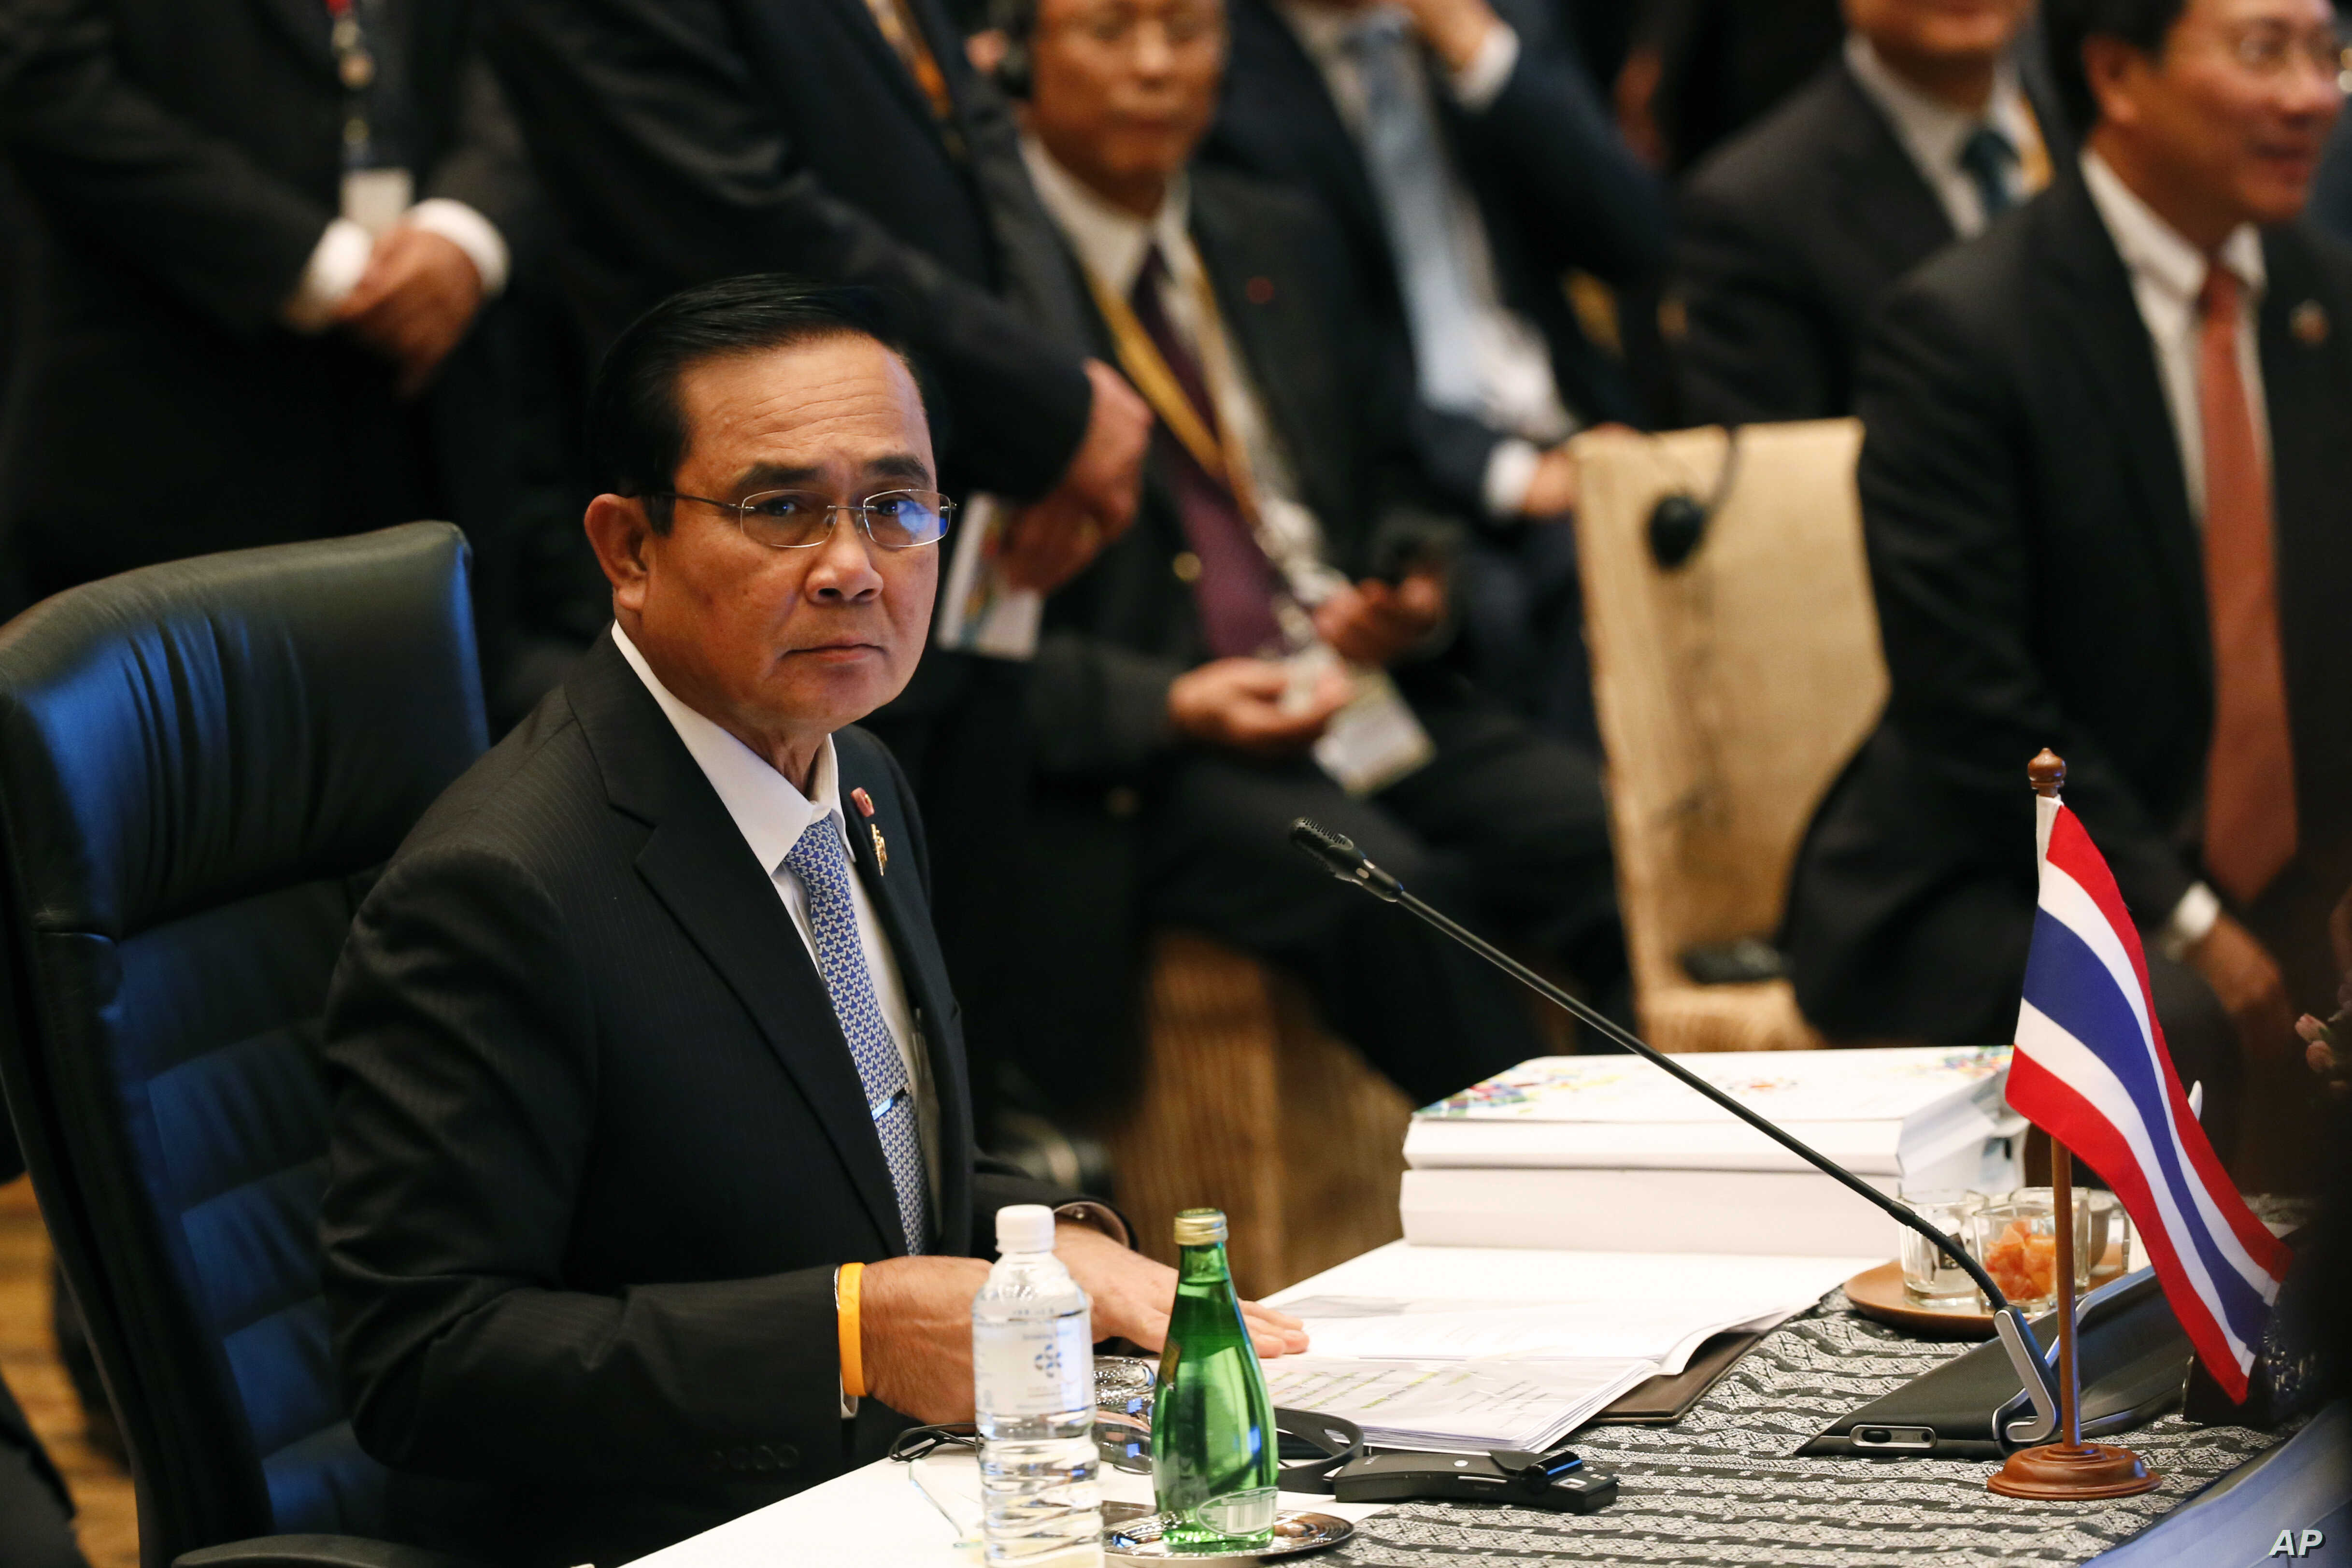 FILE - Thailand's Prime Minister Prayuth Chan-o-cha prepares before the Association of Southeast Asian Nations (ASEAN) summit in Kuala Lumpur, Malaysia, Nov. 21, 2015.